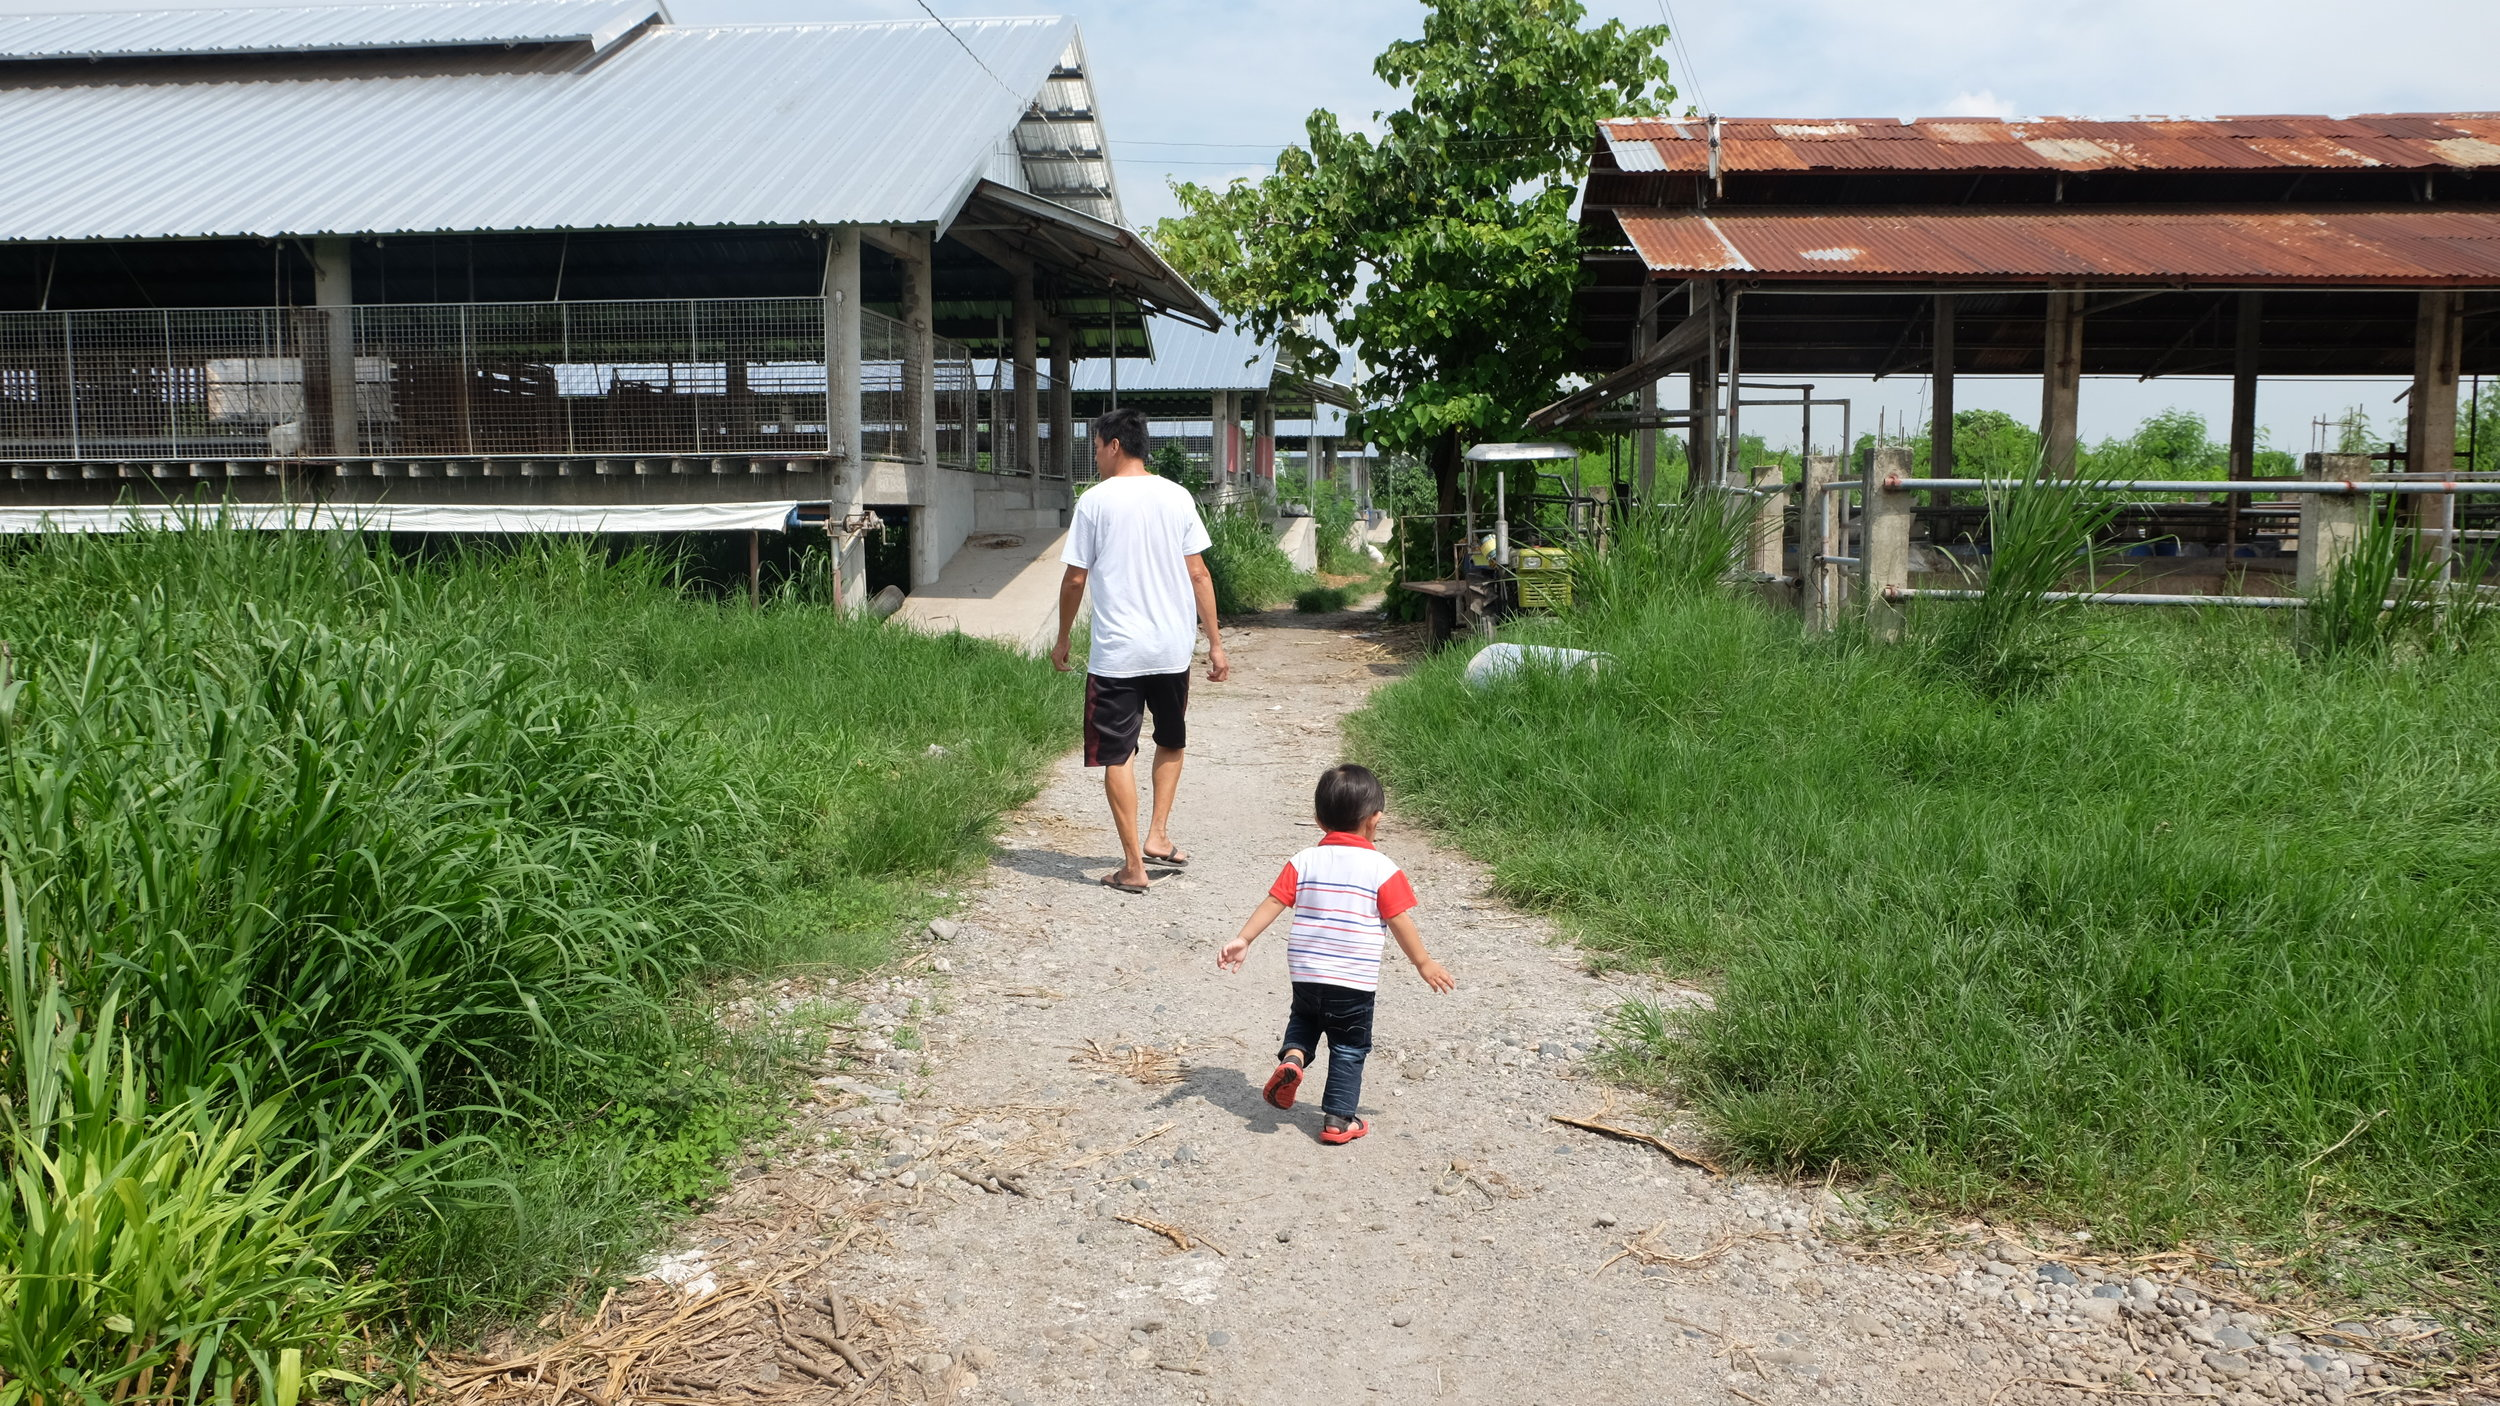 Our little boy exploring with  kuya !